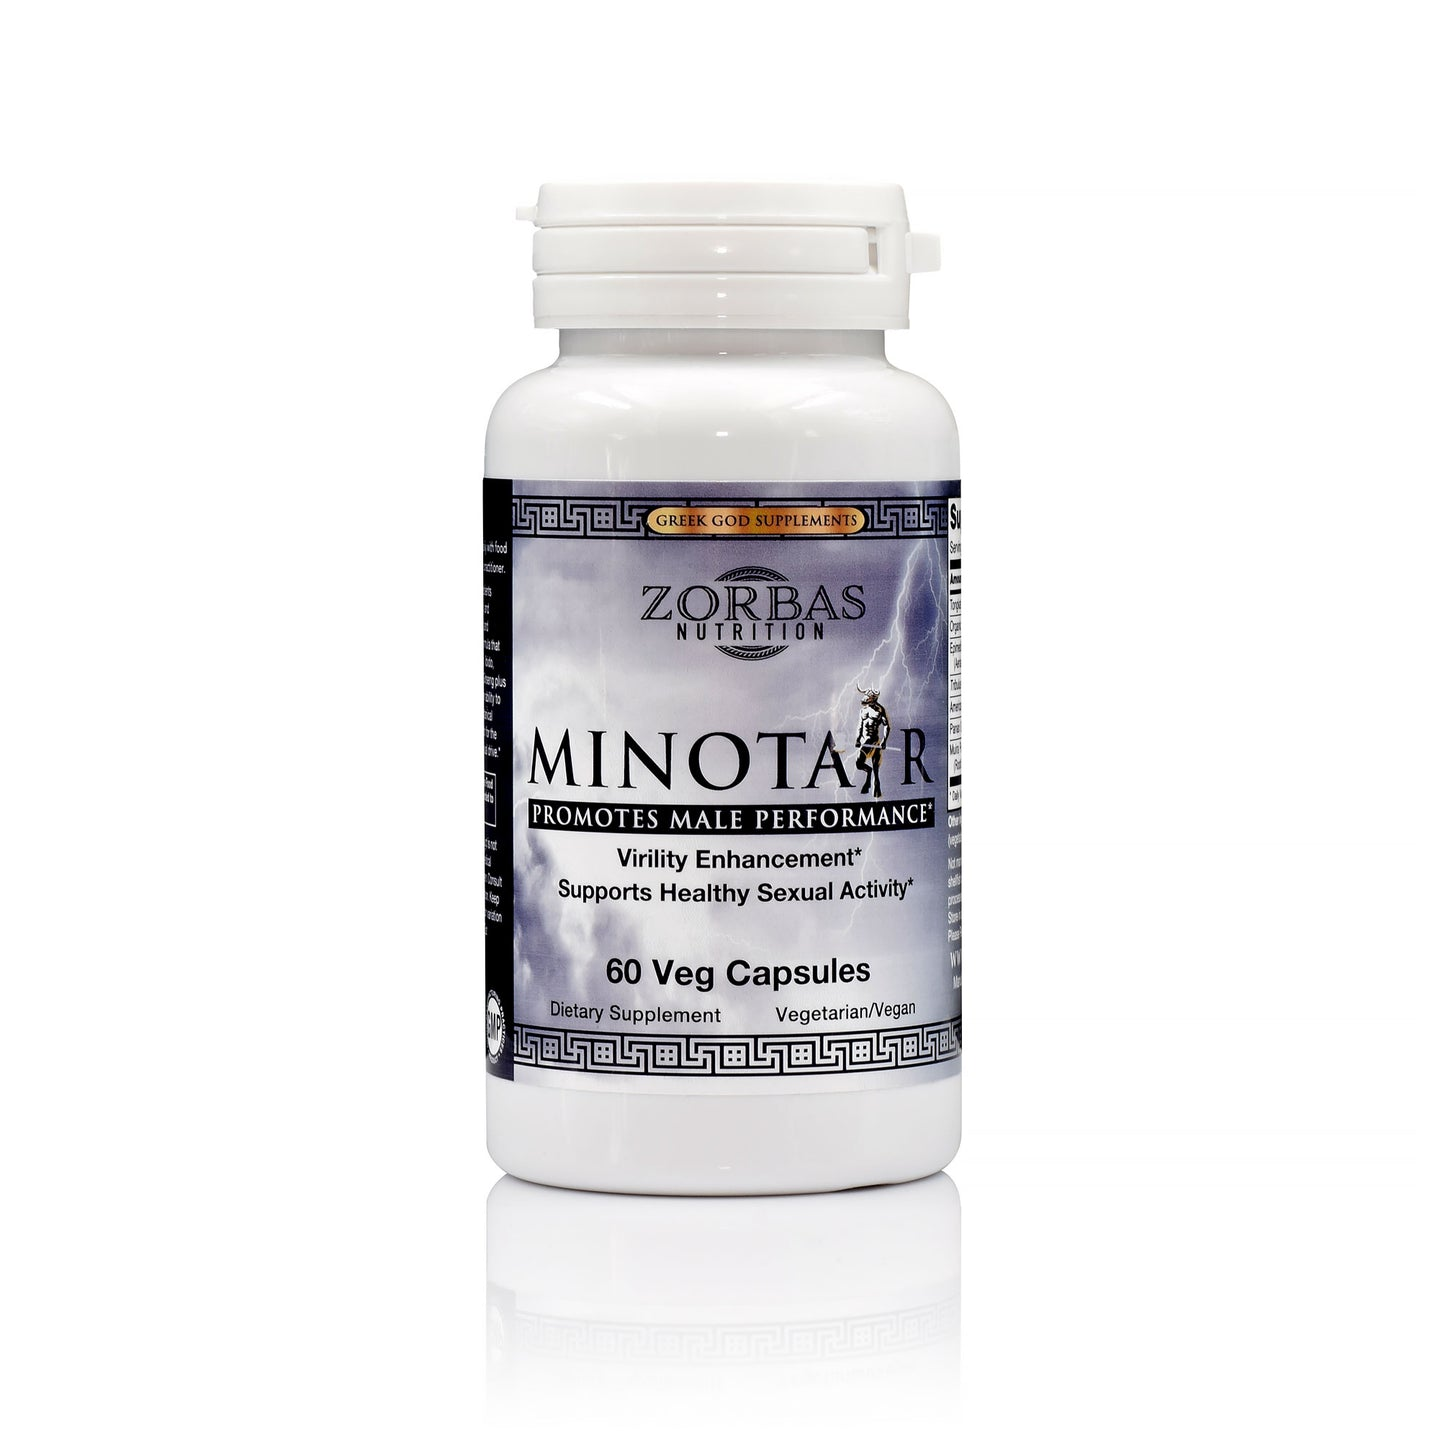 Minotaur — Virility Enhancement — Greek God Supplement